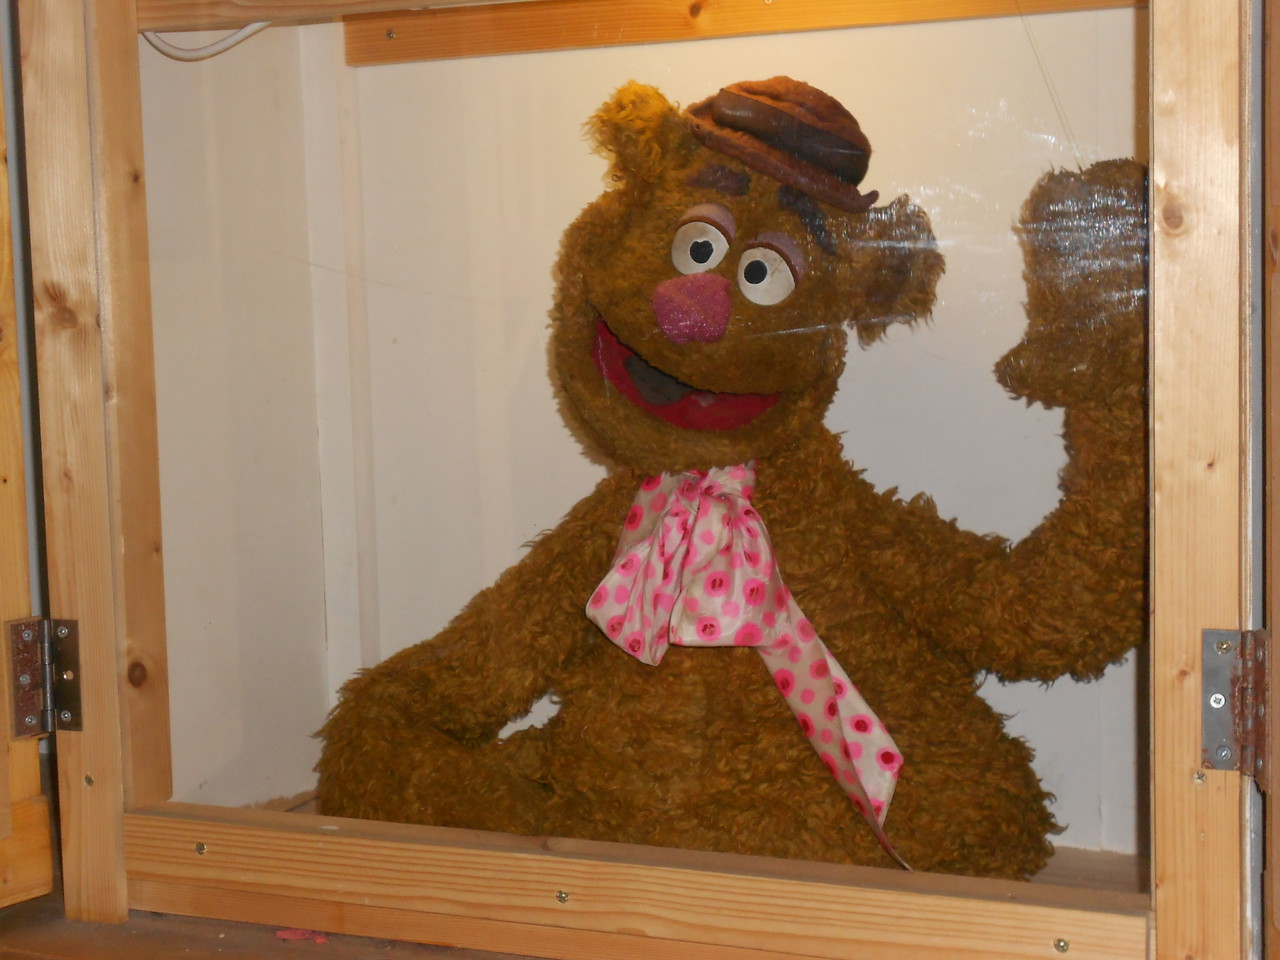 I'm not sure if this was the very first Fozzie puppet made, but it does appear to be one of the earliest.